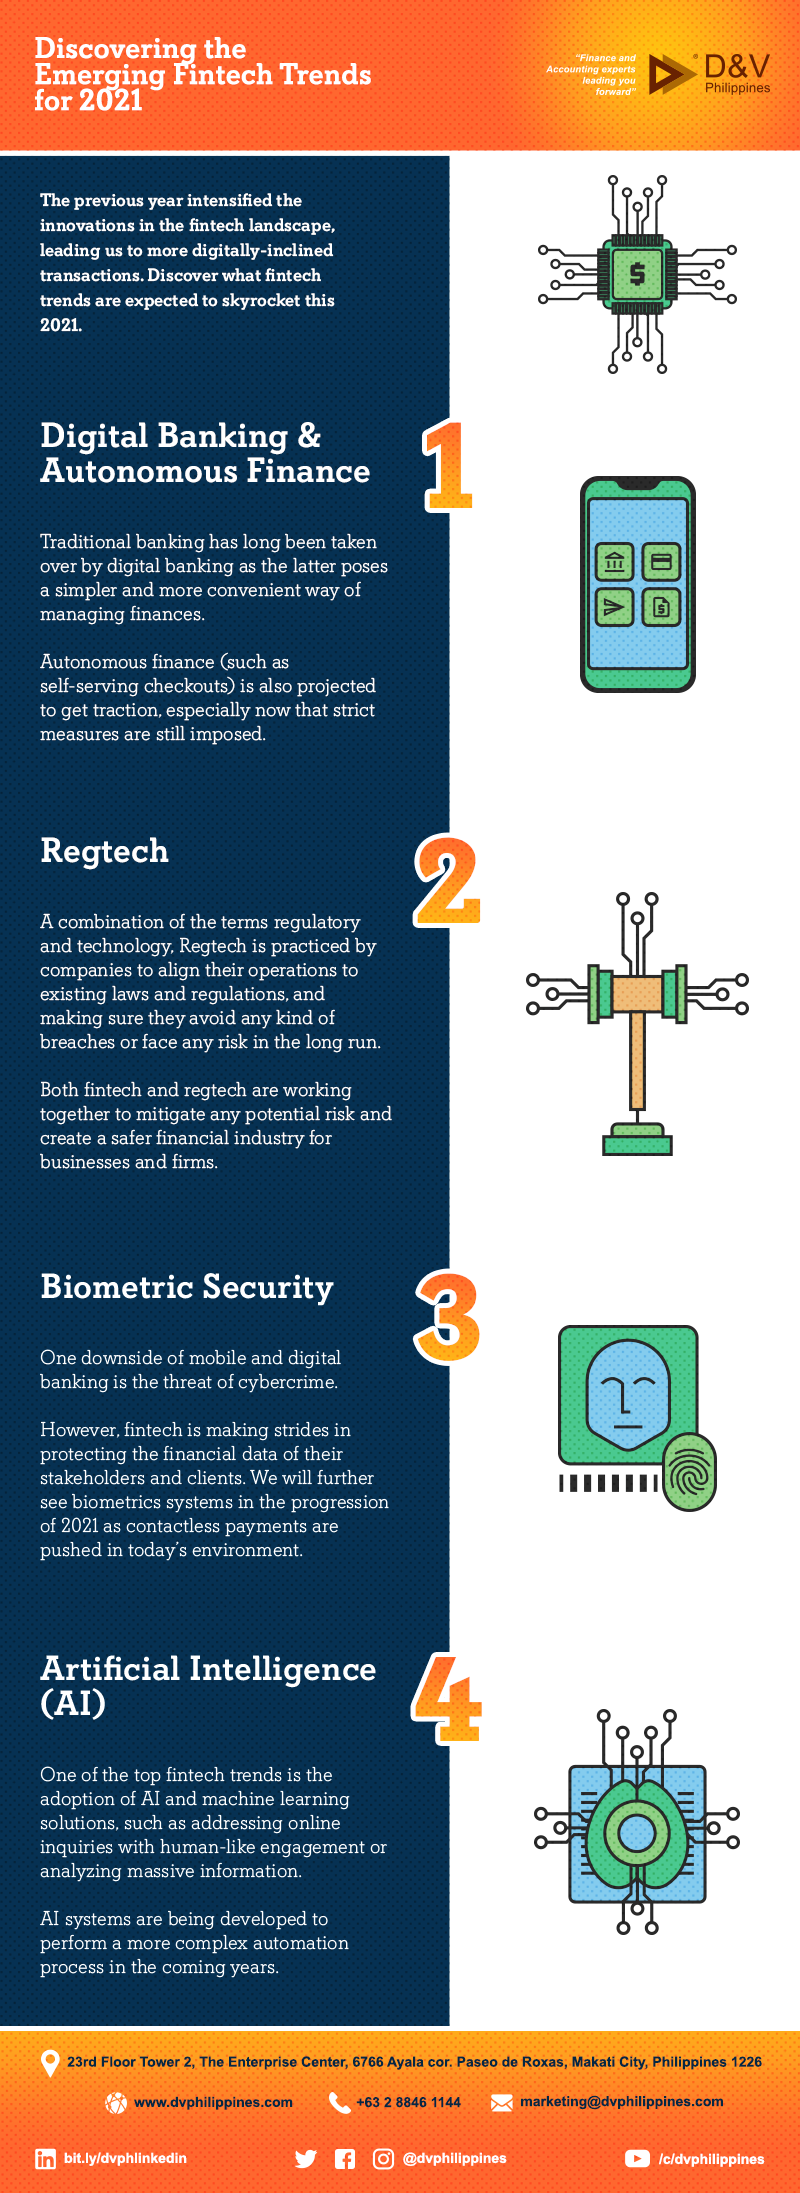 Discovering the Emerging Fintech Trends for 2021